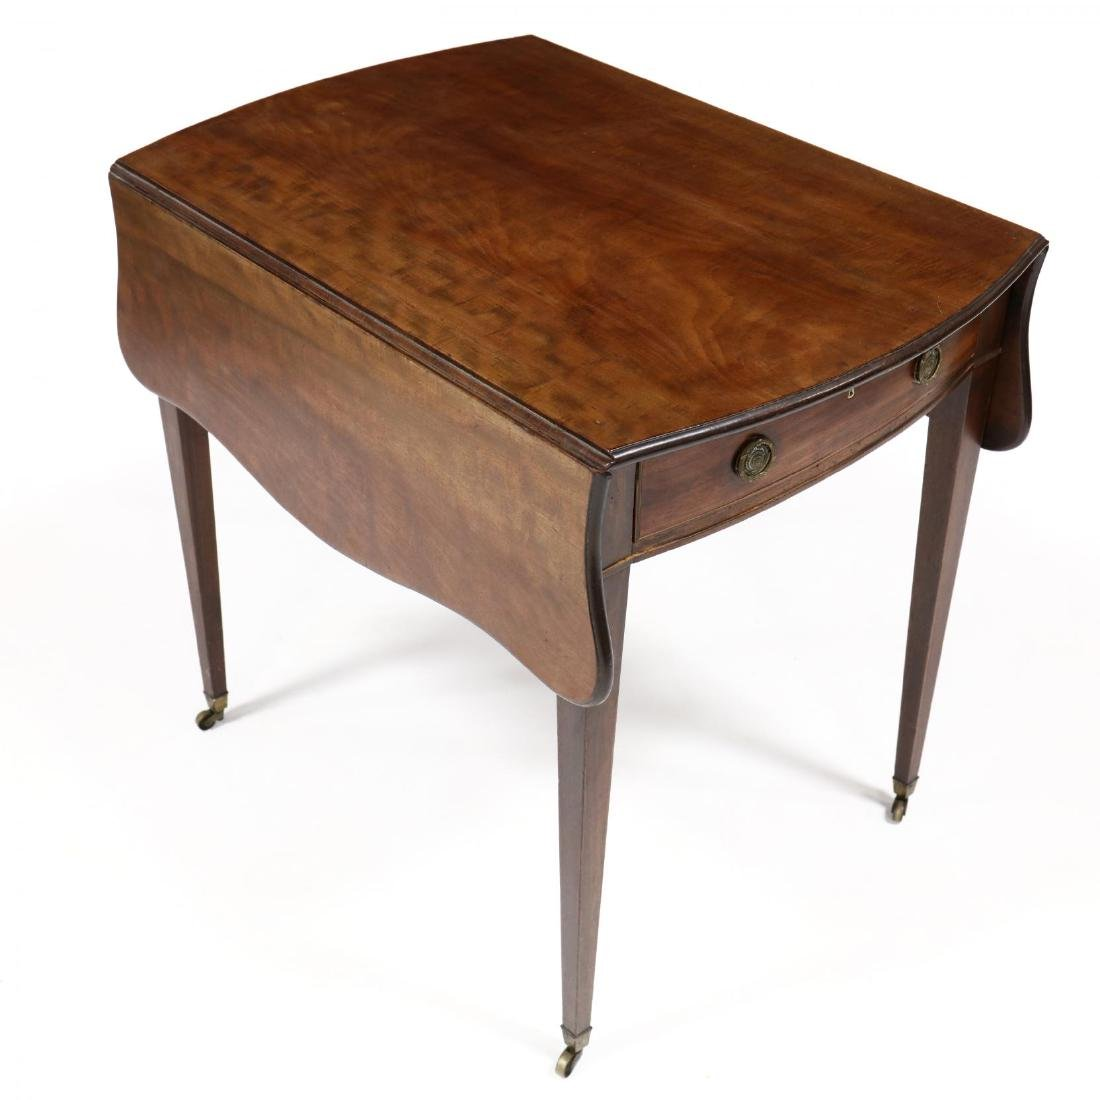 George III Mahogany Bow Front Pembroke Table - 2